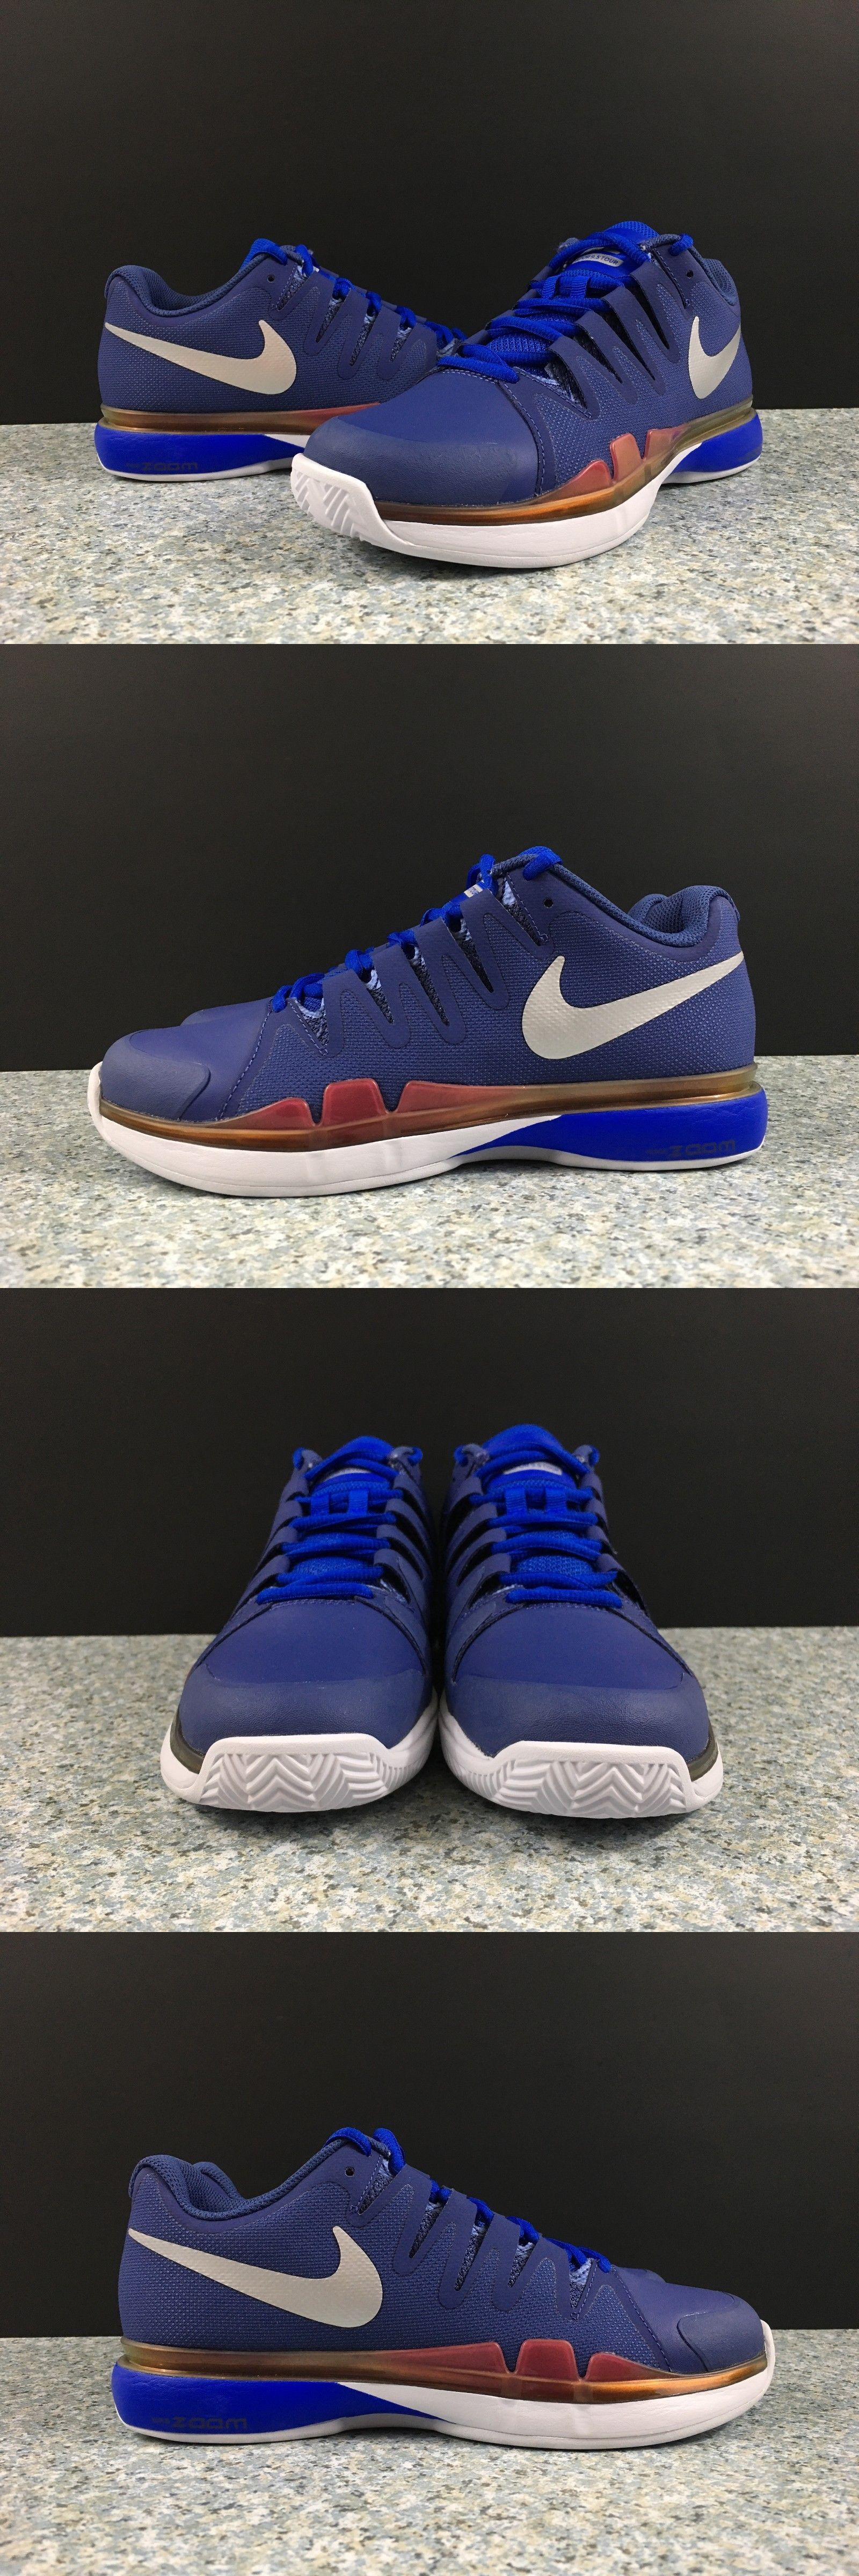 81b160b253310 Clothing Shoes and Accessories 62229  New Nike Zoom Vapor 9.5 Tour Women  Size 8 Blue